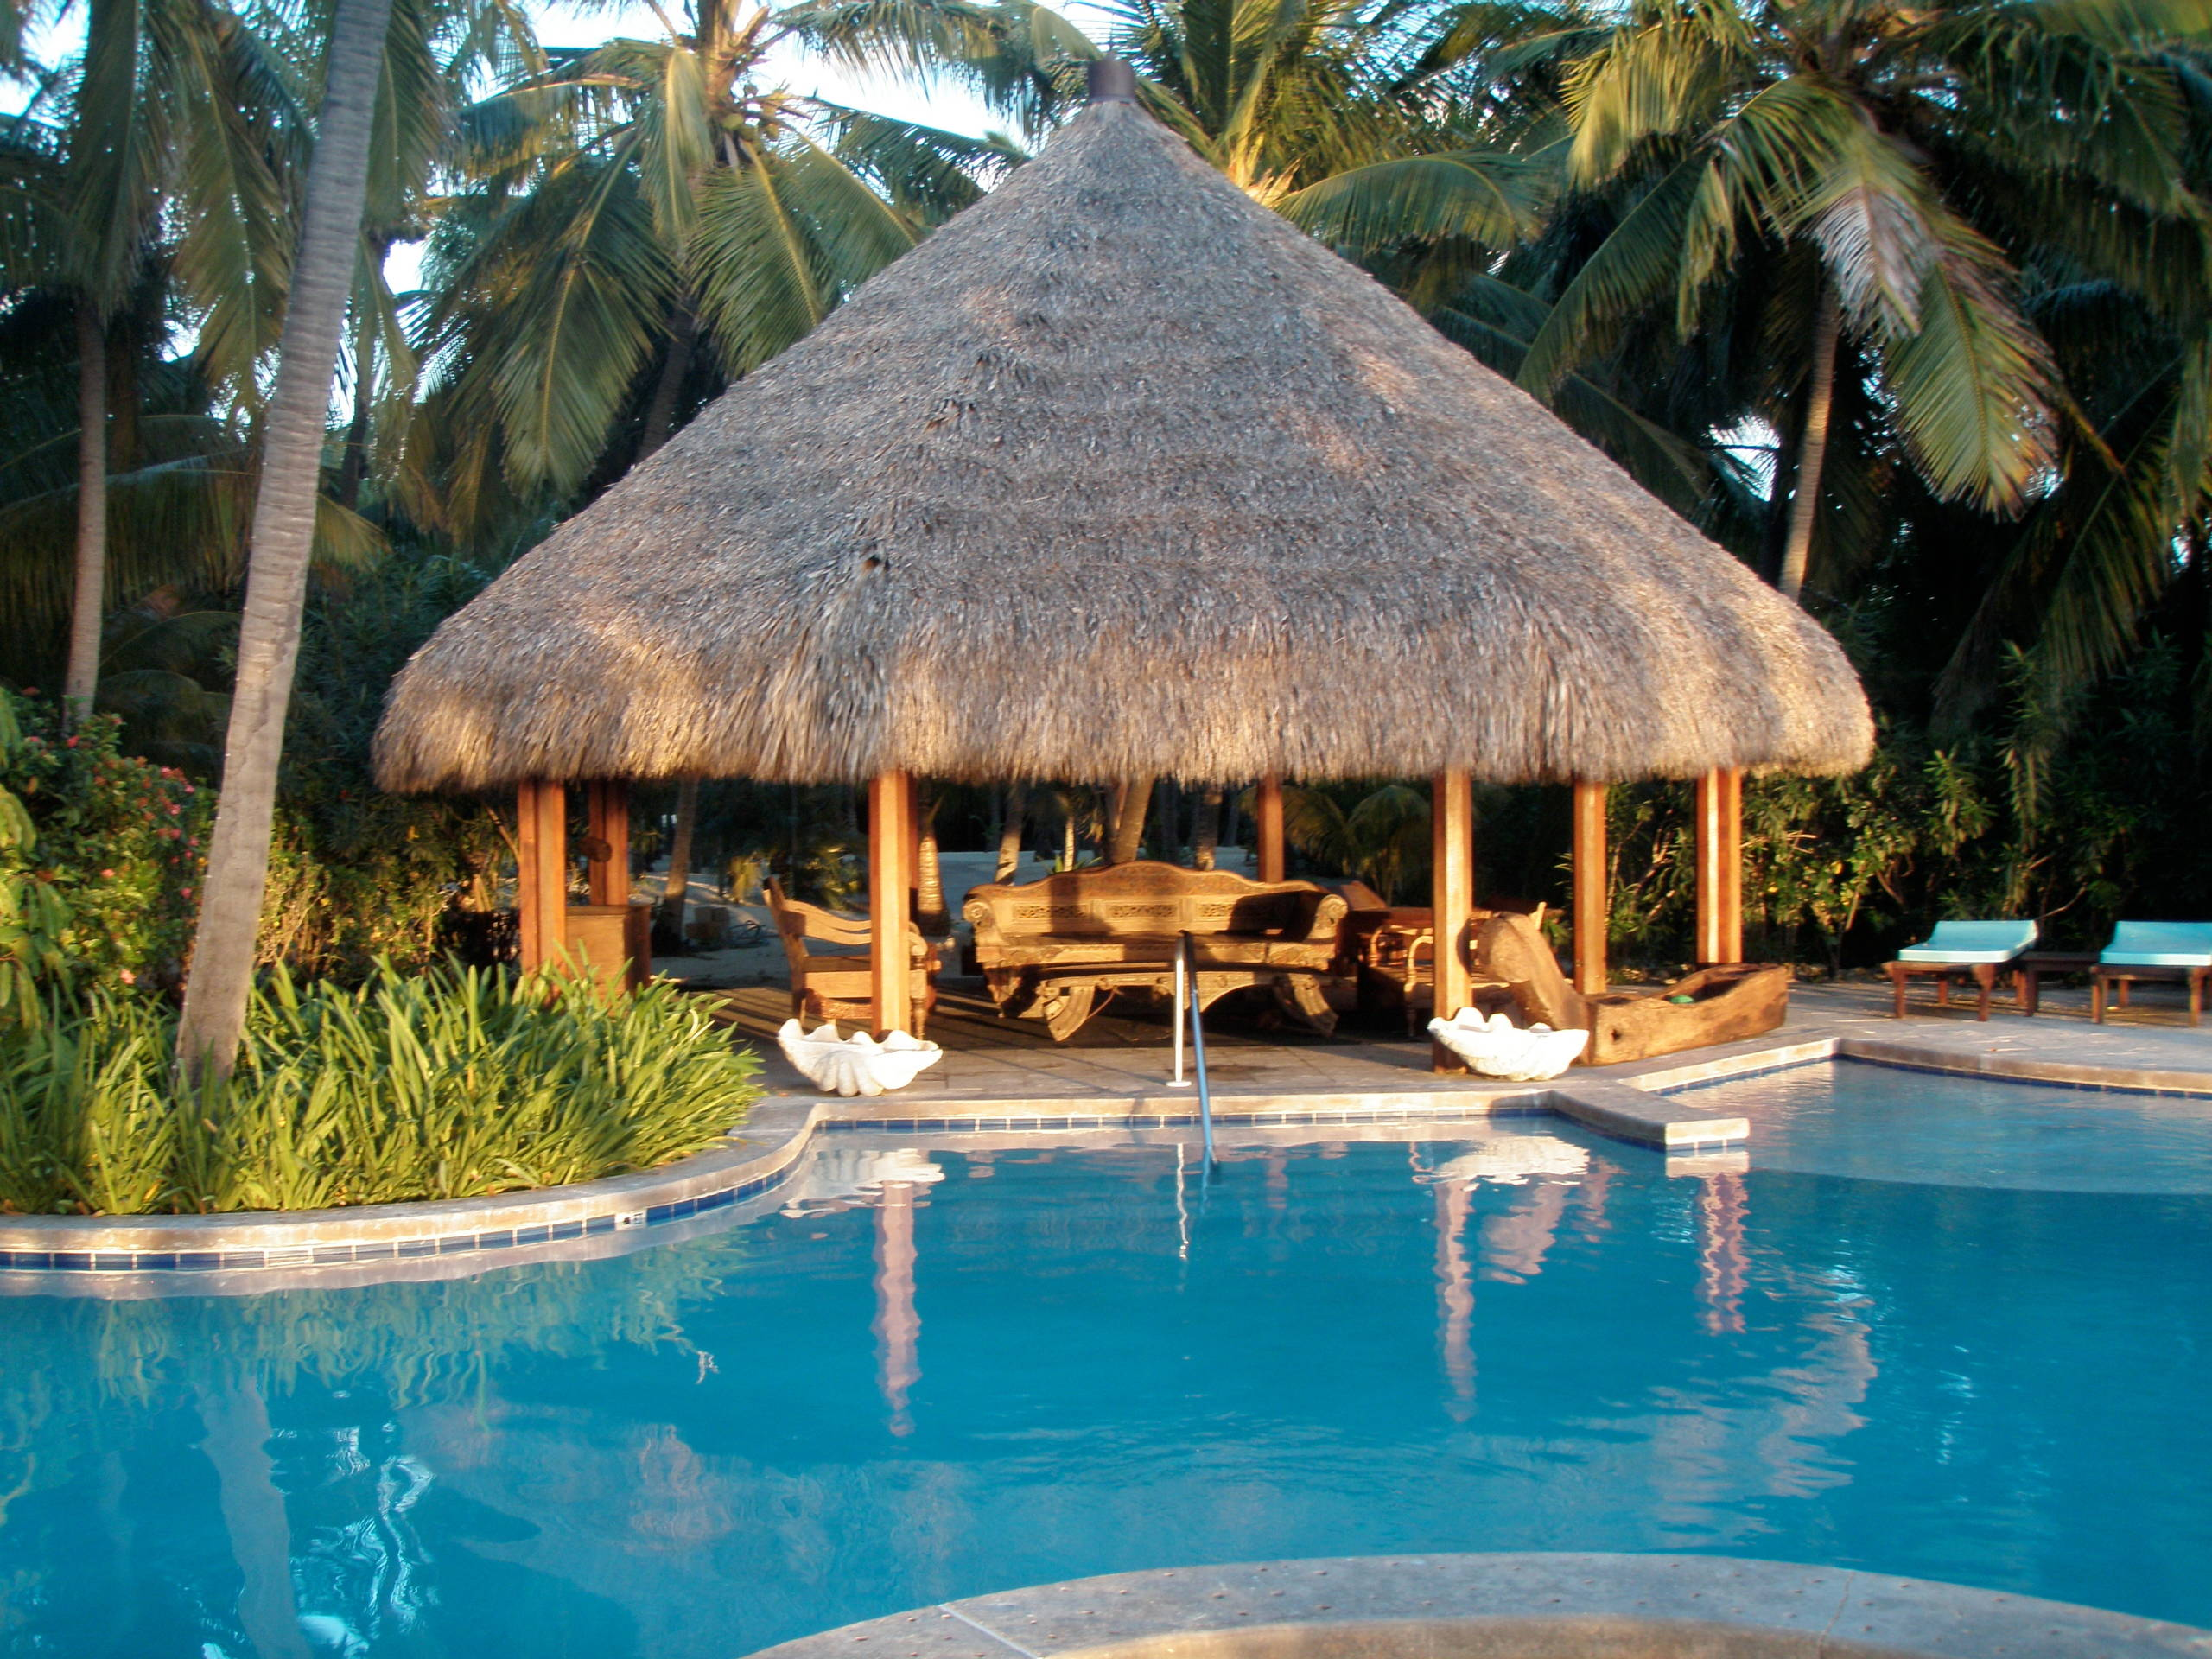 resort lifestyle with a grass hut